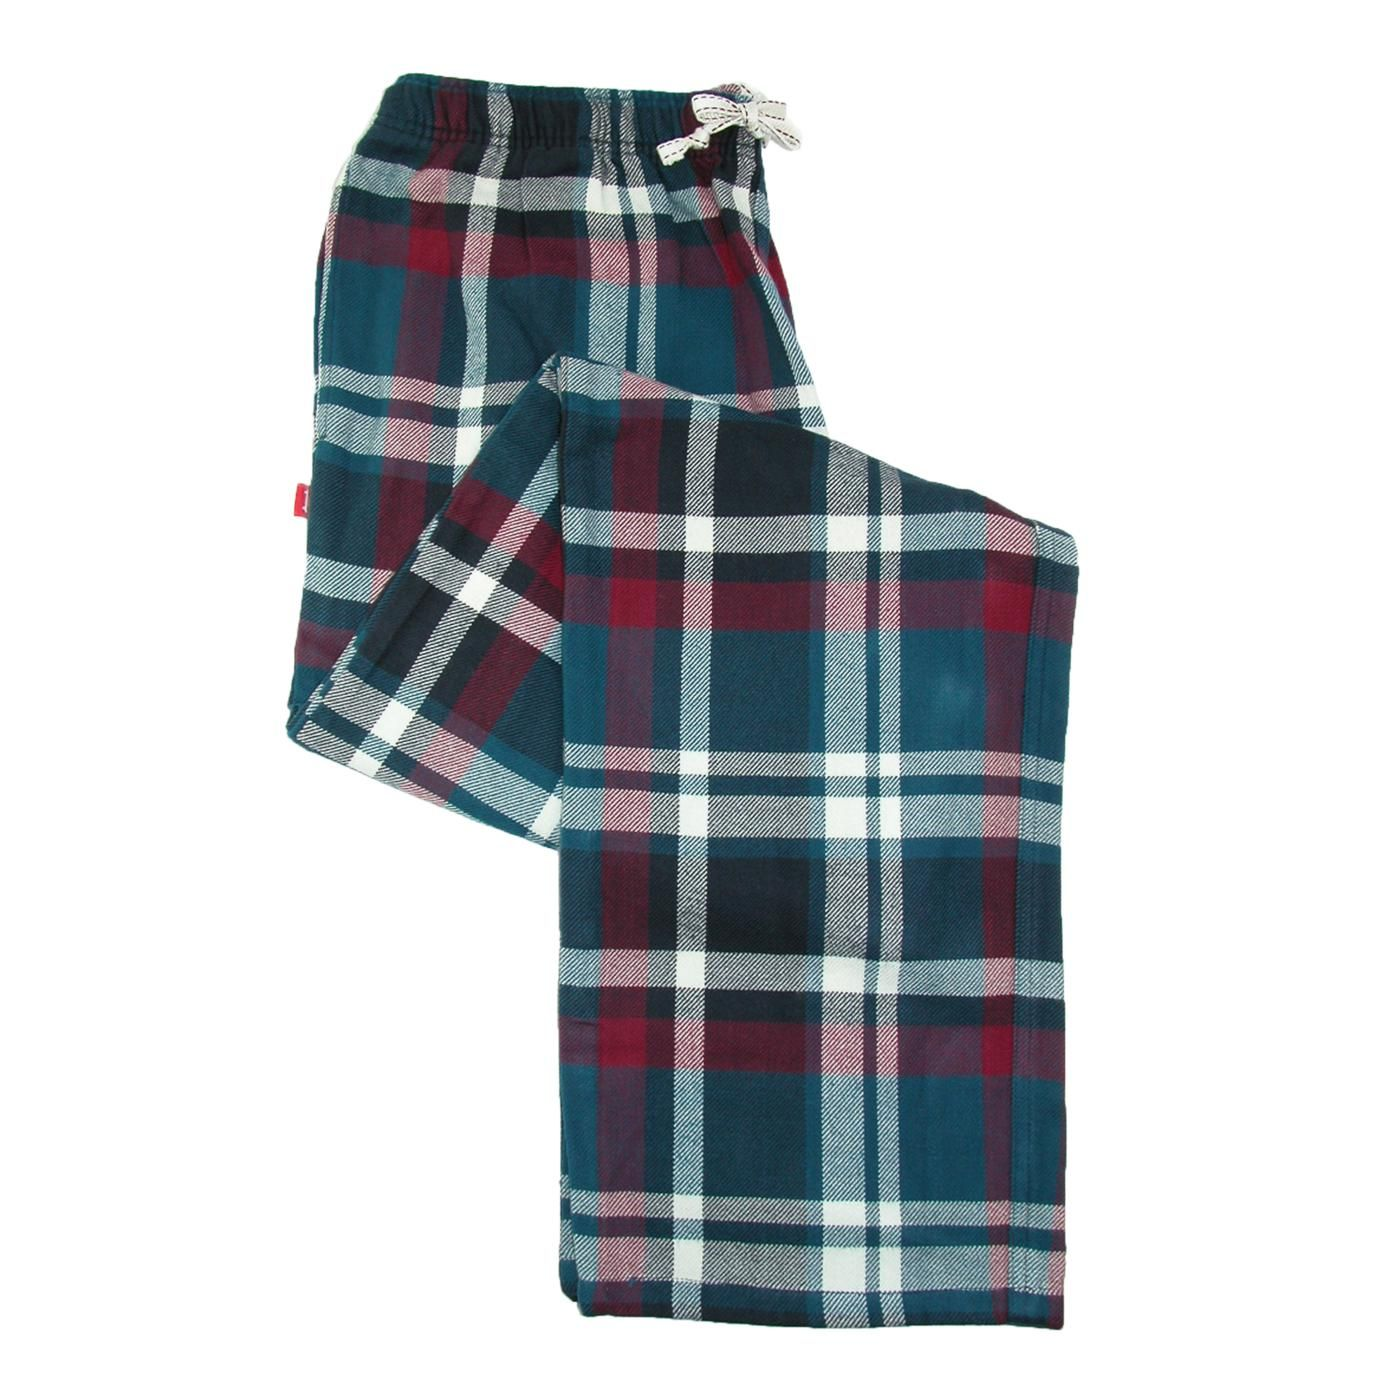 Men's grey flannel trousers  Woolrich  Woolrich  Pinterest  Pyjamas and Nightgown